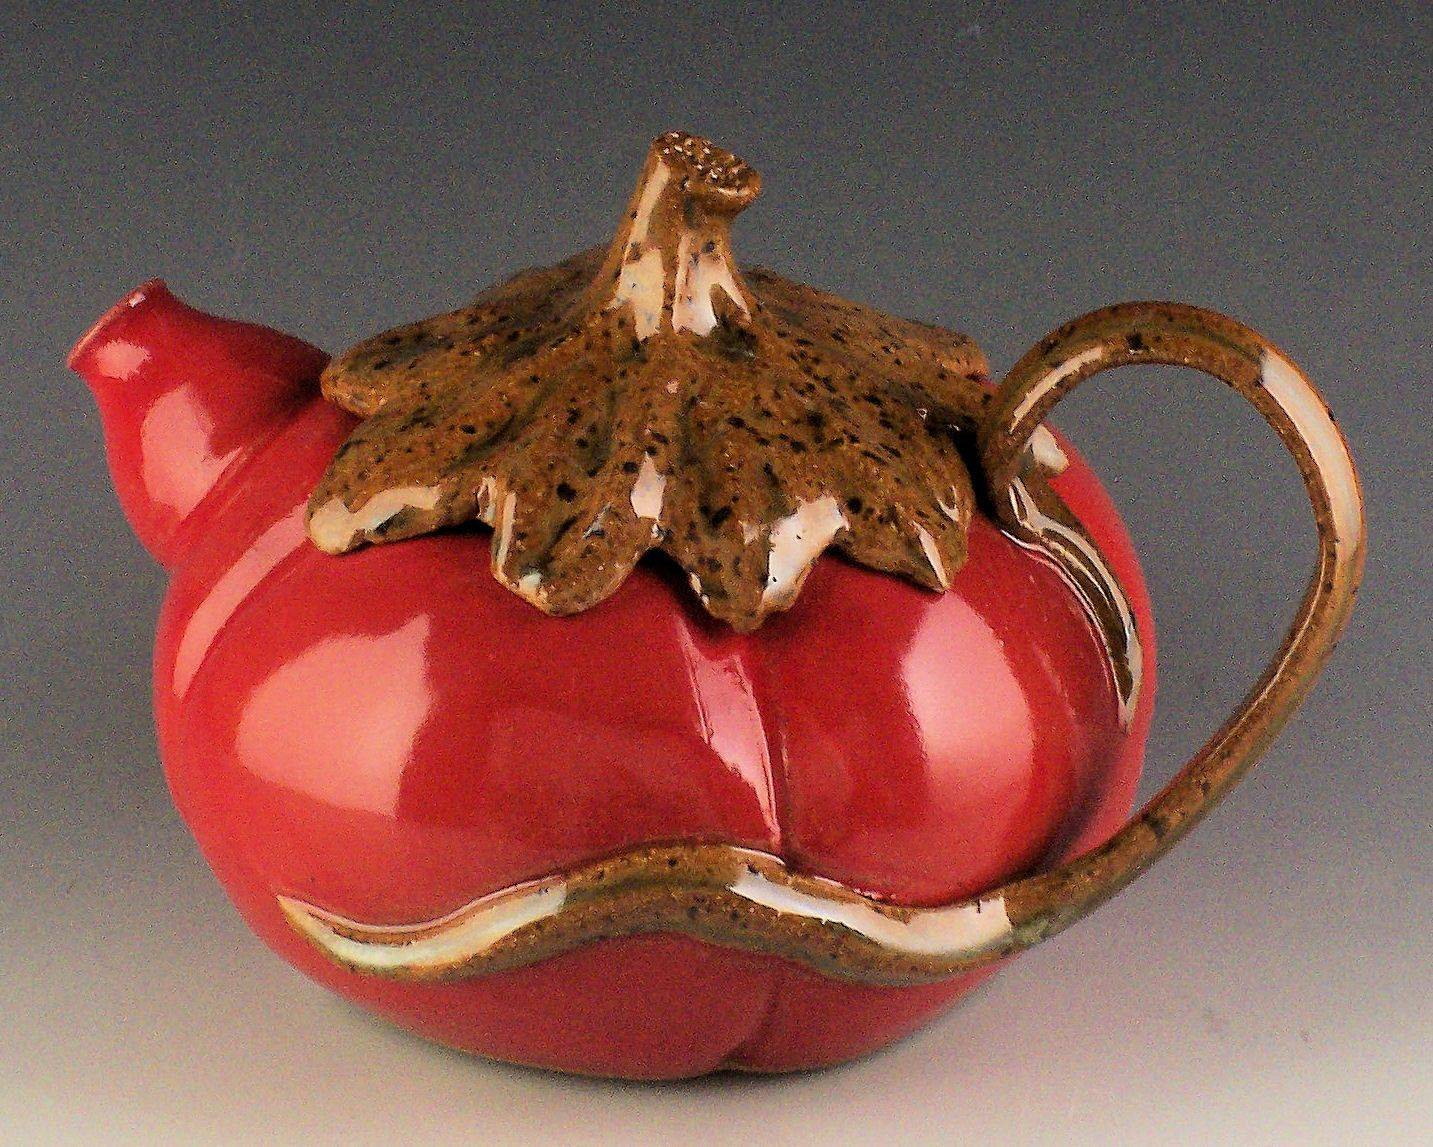 This tomato teapot is an example of one of the treasures visitors to the Indiana Artisan Marketplace might find.